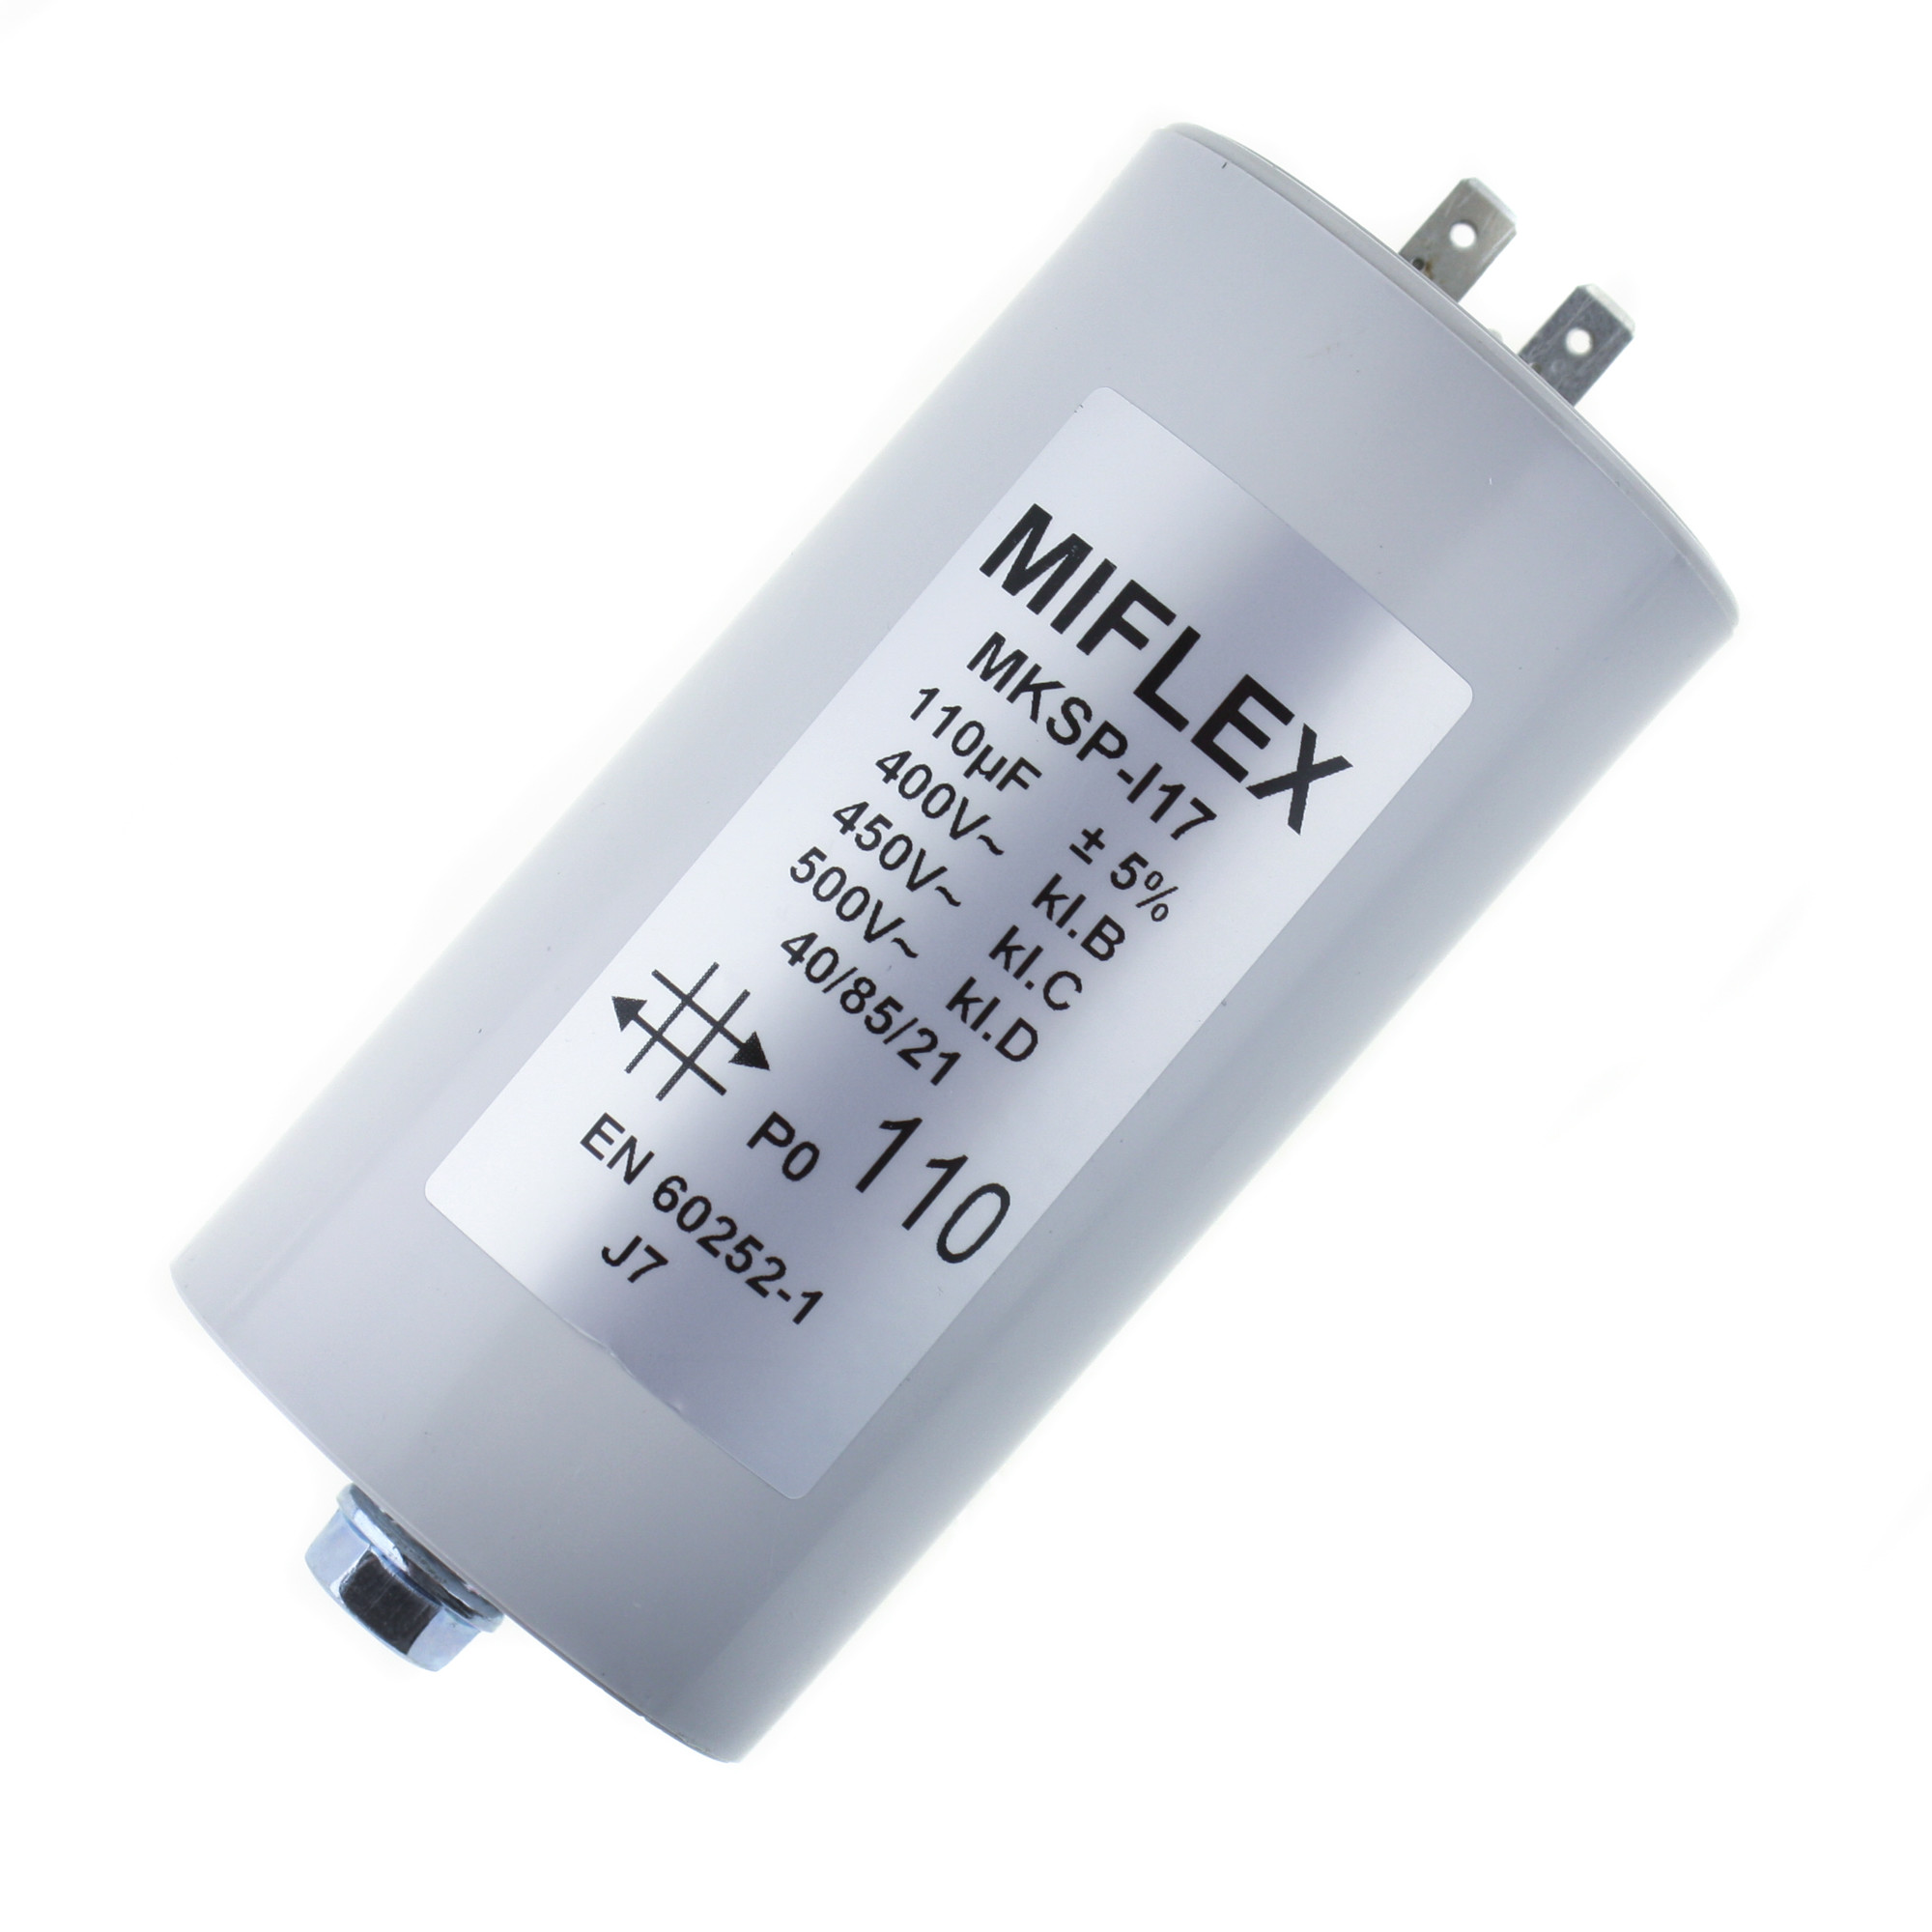 Motor Capacitor 110uF-400V, 60x119mm, flat connection [313443 ...